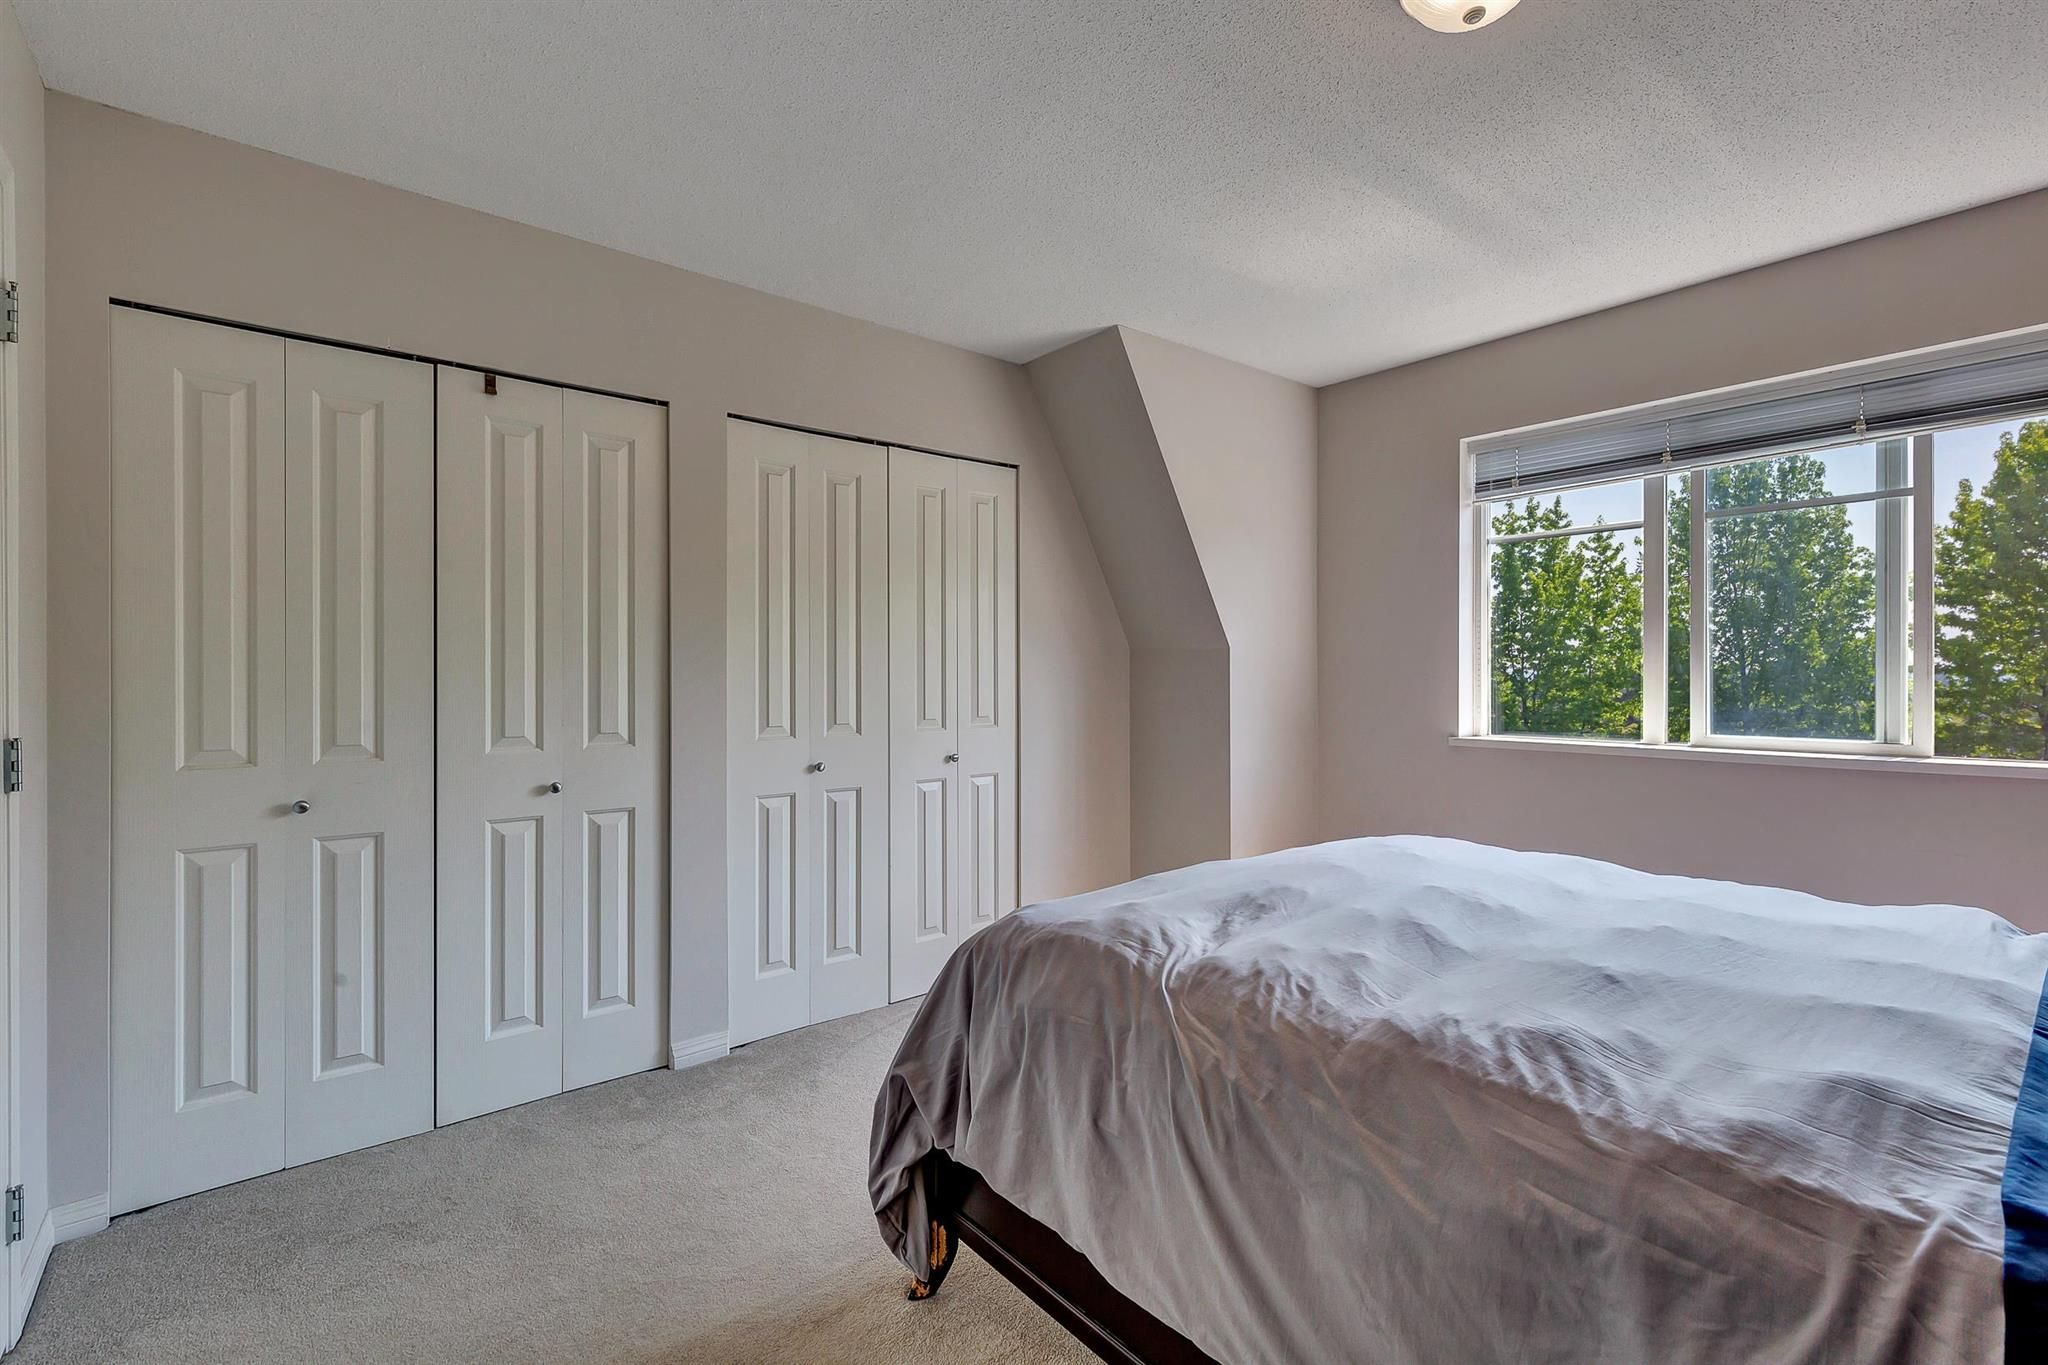 """Photo 22: Photos: 9 15871 85 Avenue in Surrey: Fleetwood Tynehead Townhouse for sale in """"Huckleberry"""" : MLS®# R2606668"""